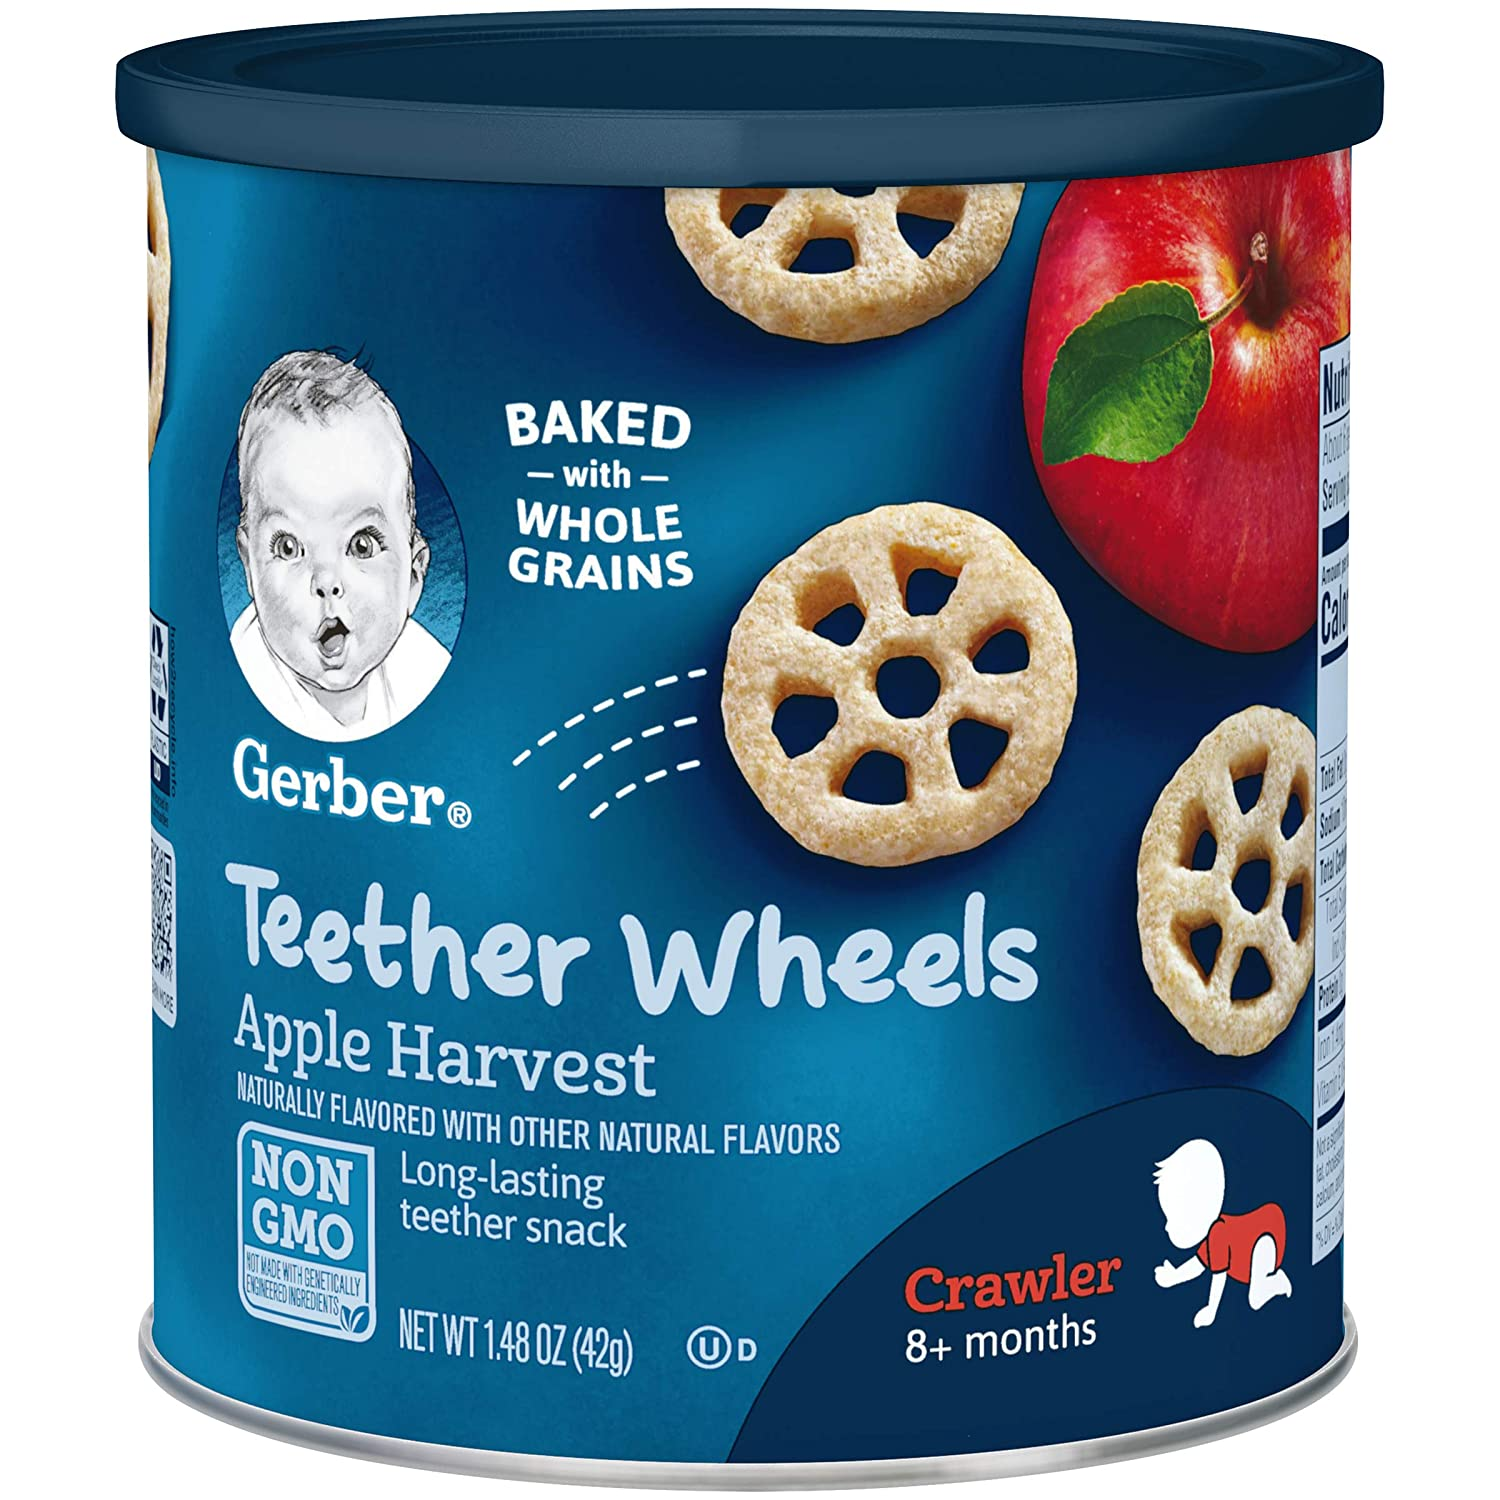 B000FPM22O Gerber Teether Wheels, Apple Harvest, 1.48 Ounce (Pack of 6) 81xU-KvyopL